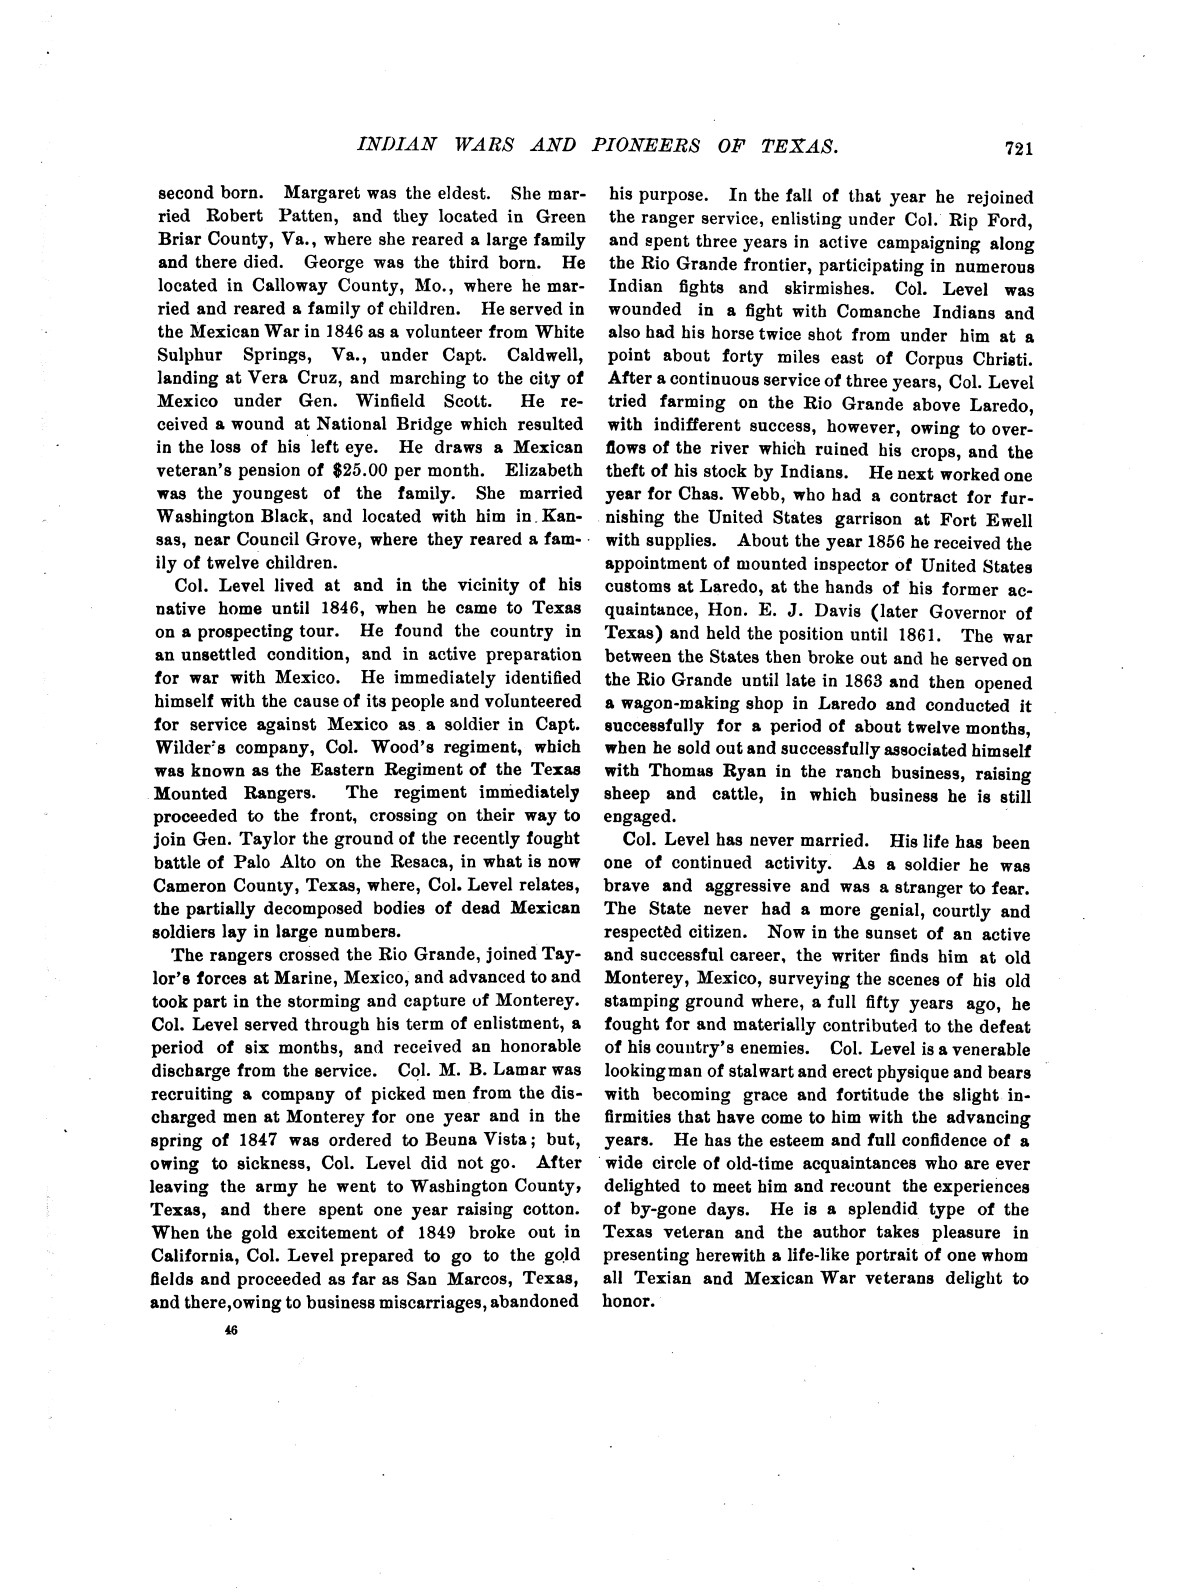 Indian wars and pioneers of Texas / by John Henry Brown.                                                                                                      [Sequence #]: 837 of 894